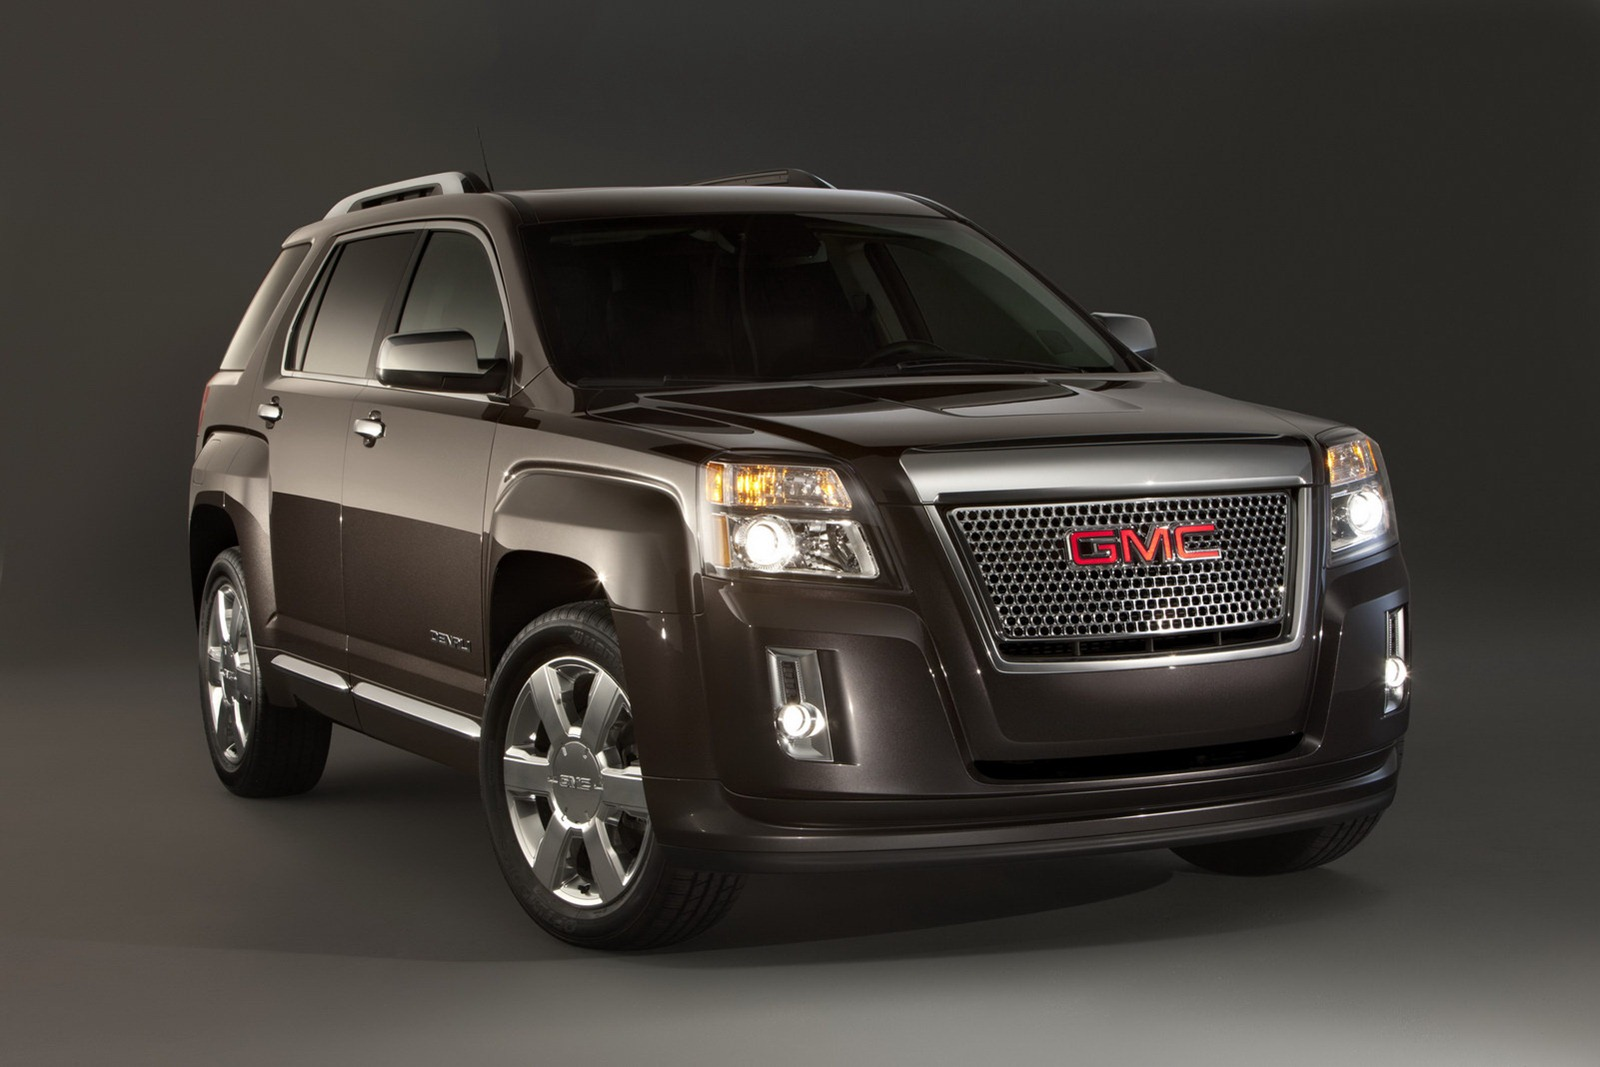 2013 GMC Terrain and Terrain Denali 1 2013 GMC Terrain and Terrain Denali to Be Launched This Year